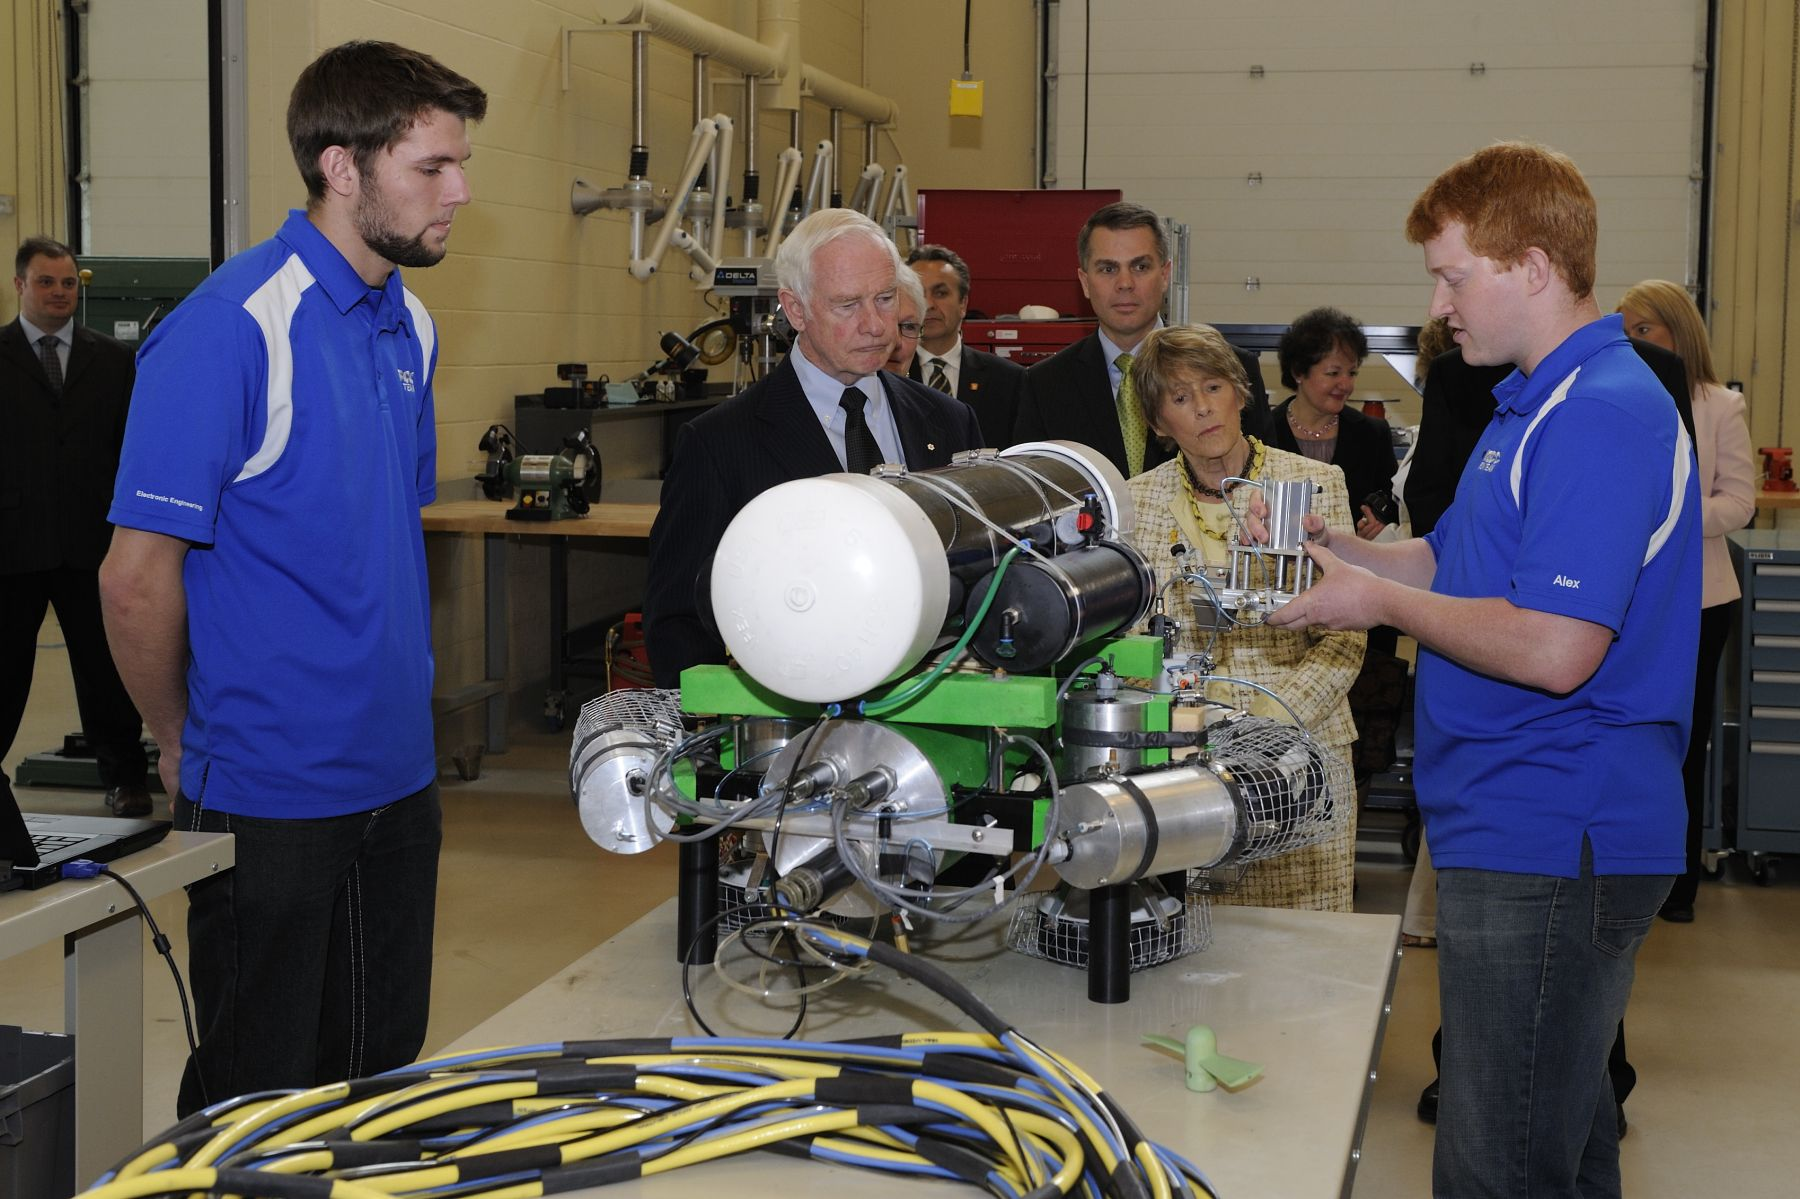 During the tour of the College, Their Excellencies engaged with students from the Centre for the Built Environment (CBE), an example of restorative building design, which blends elements of the 'natural' and 'built' environments to ensure the building and its operations do not contribute to environmental harm. The CBE focuses on creating learning environments that enable students to collaborate on projects, see first-hand how building systems function, and access the latest in alternative energy technologies.